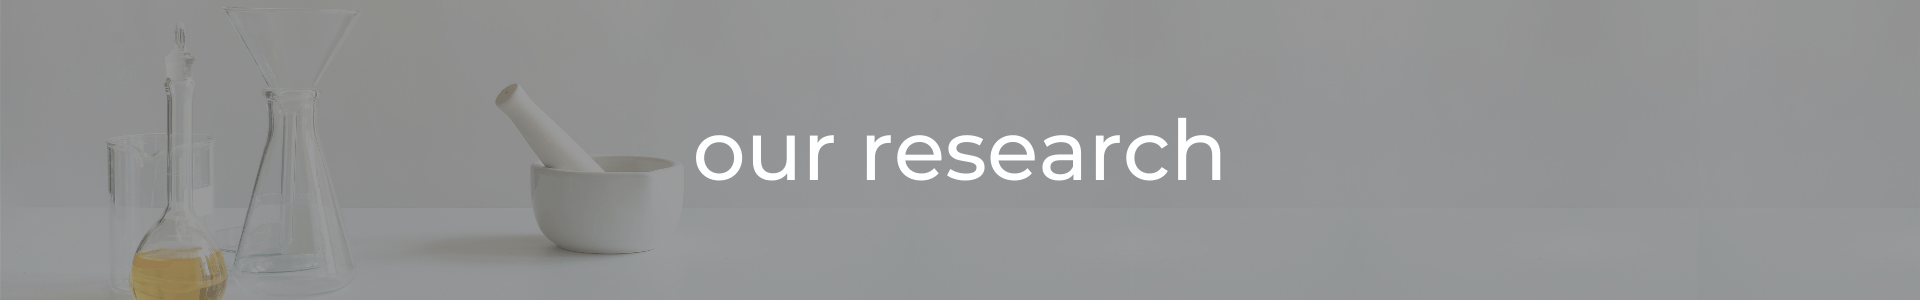 Our Research 1